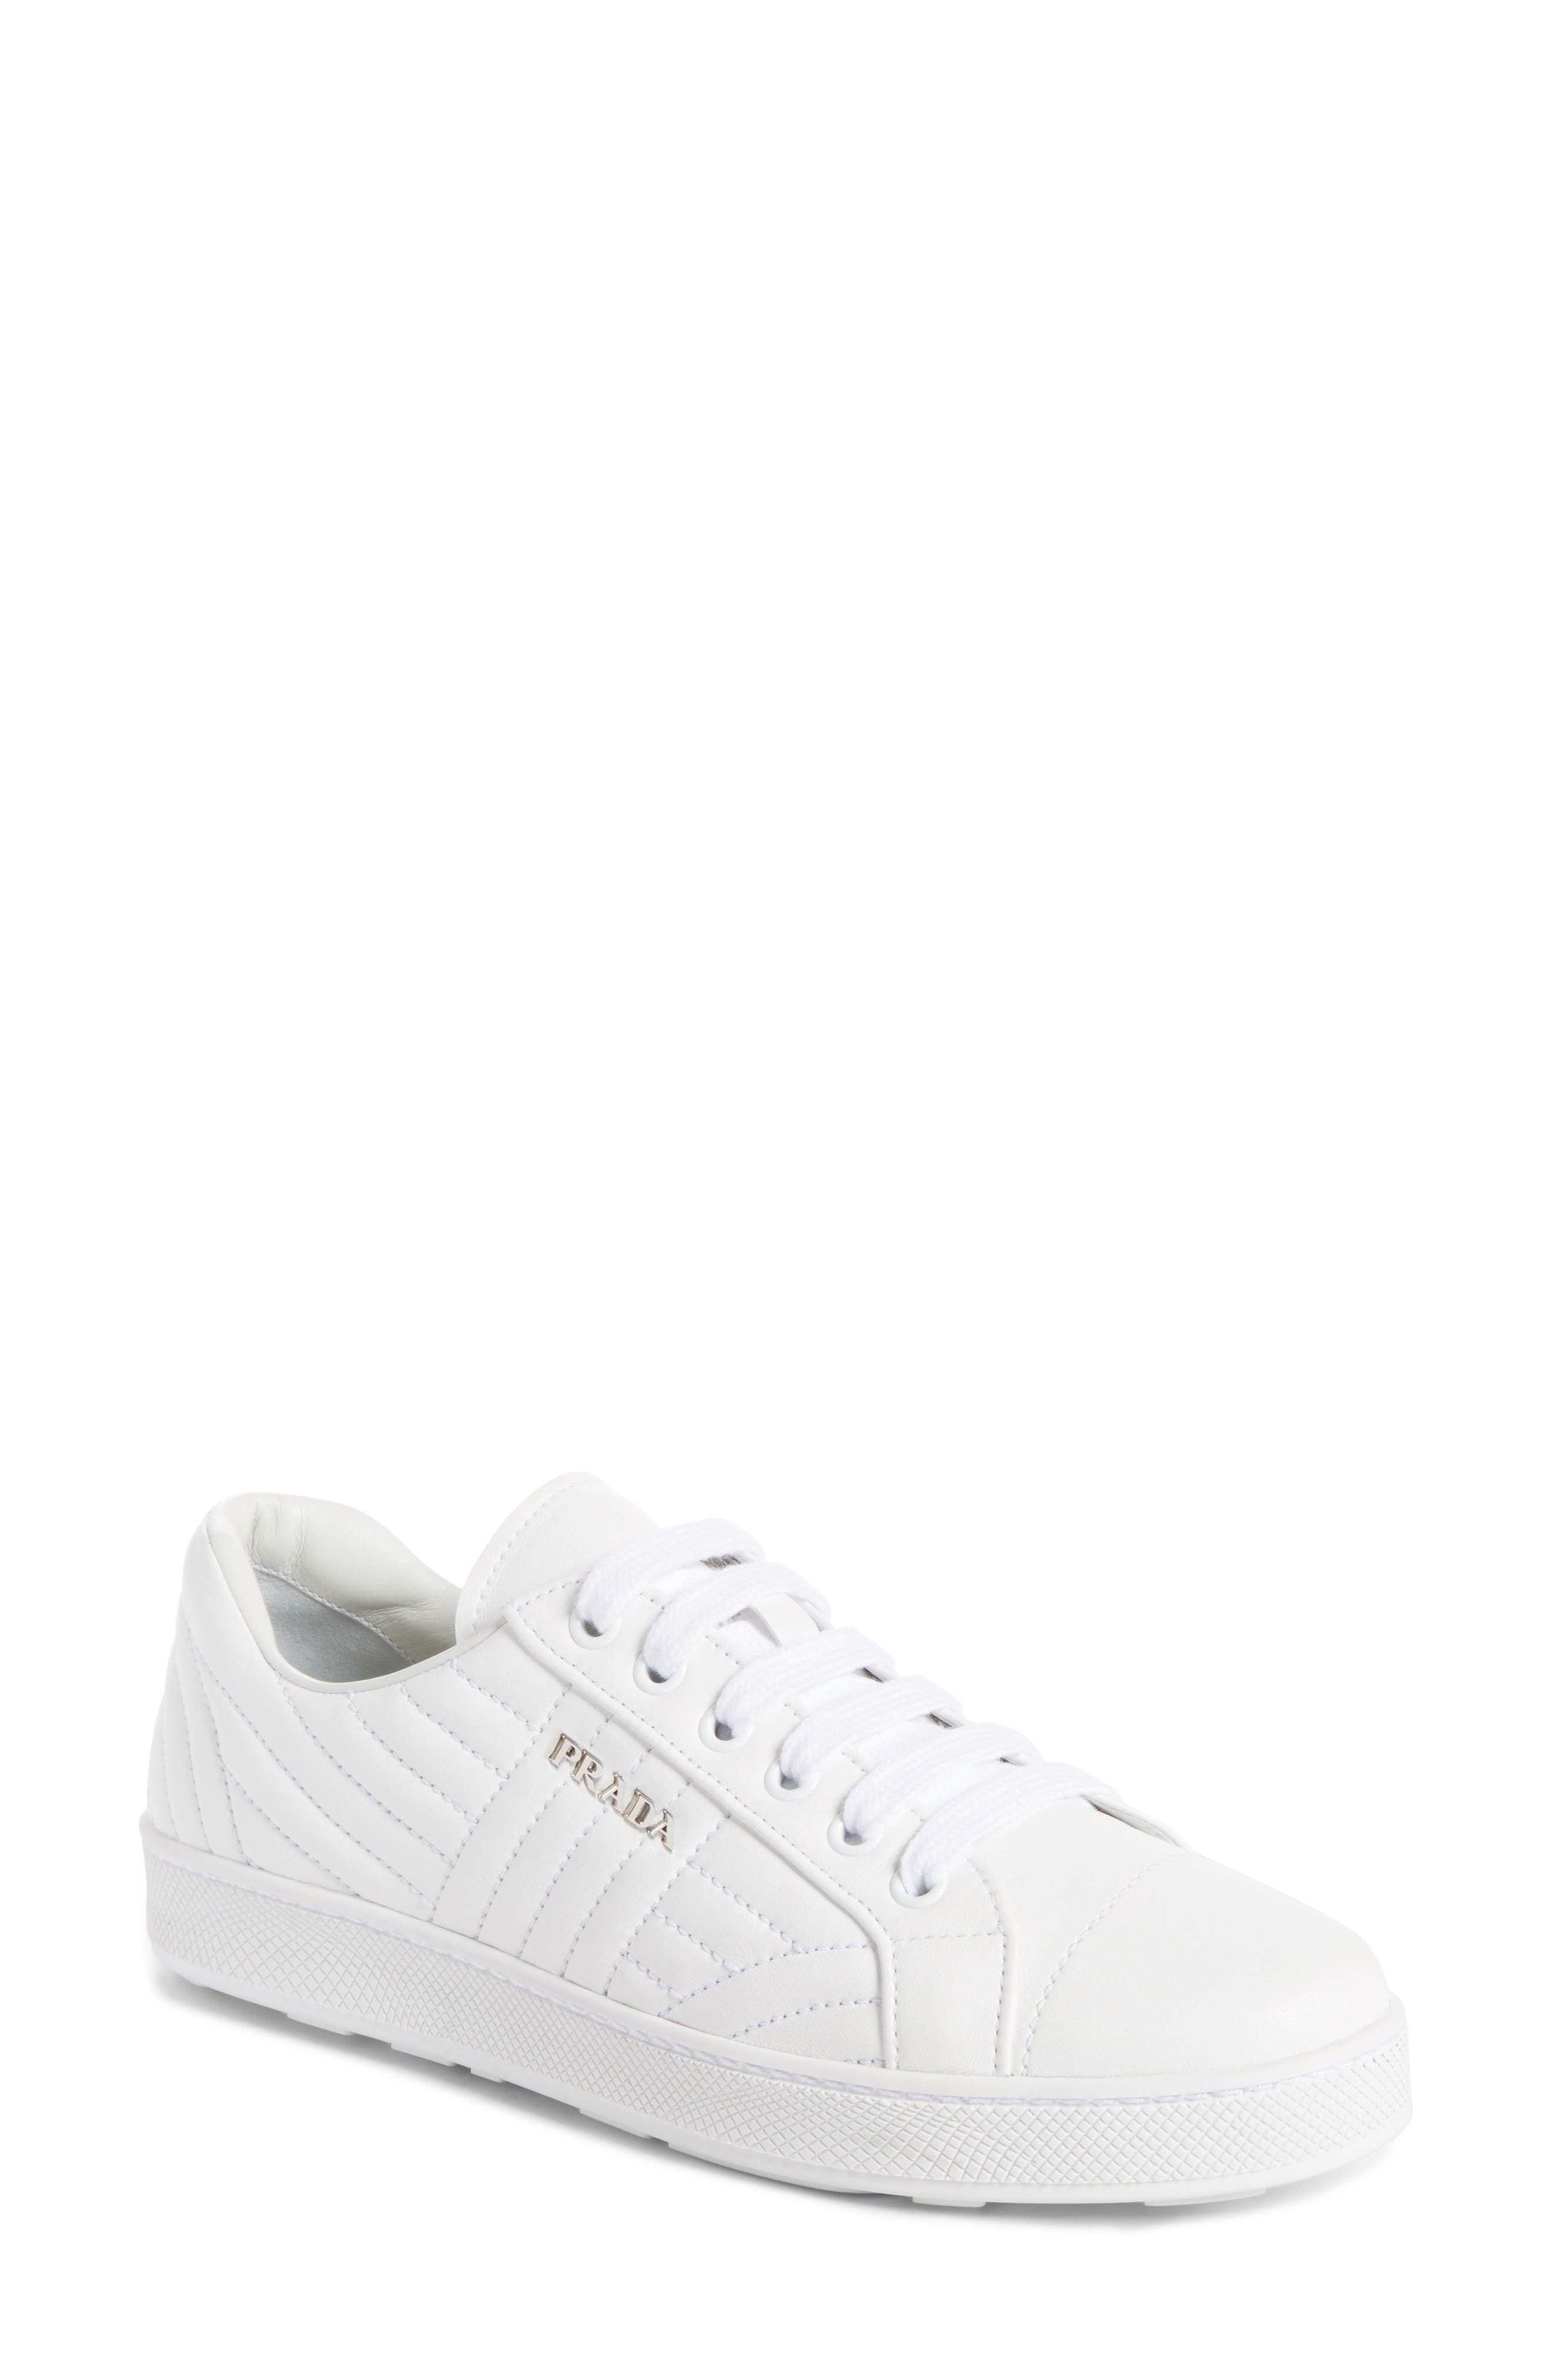 Prada Quilted Leather Sneaker (Women)